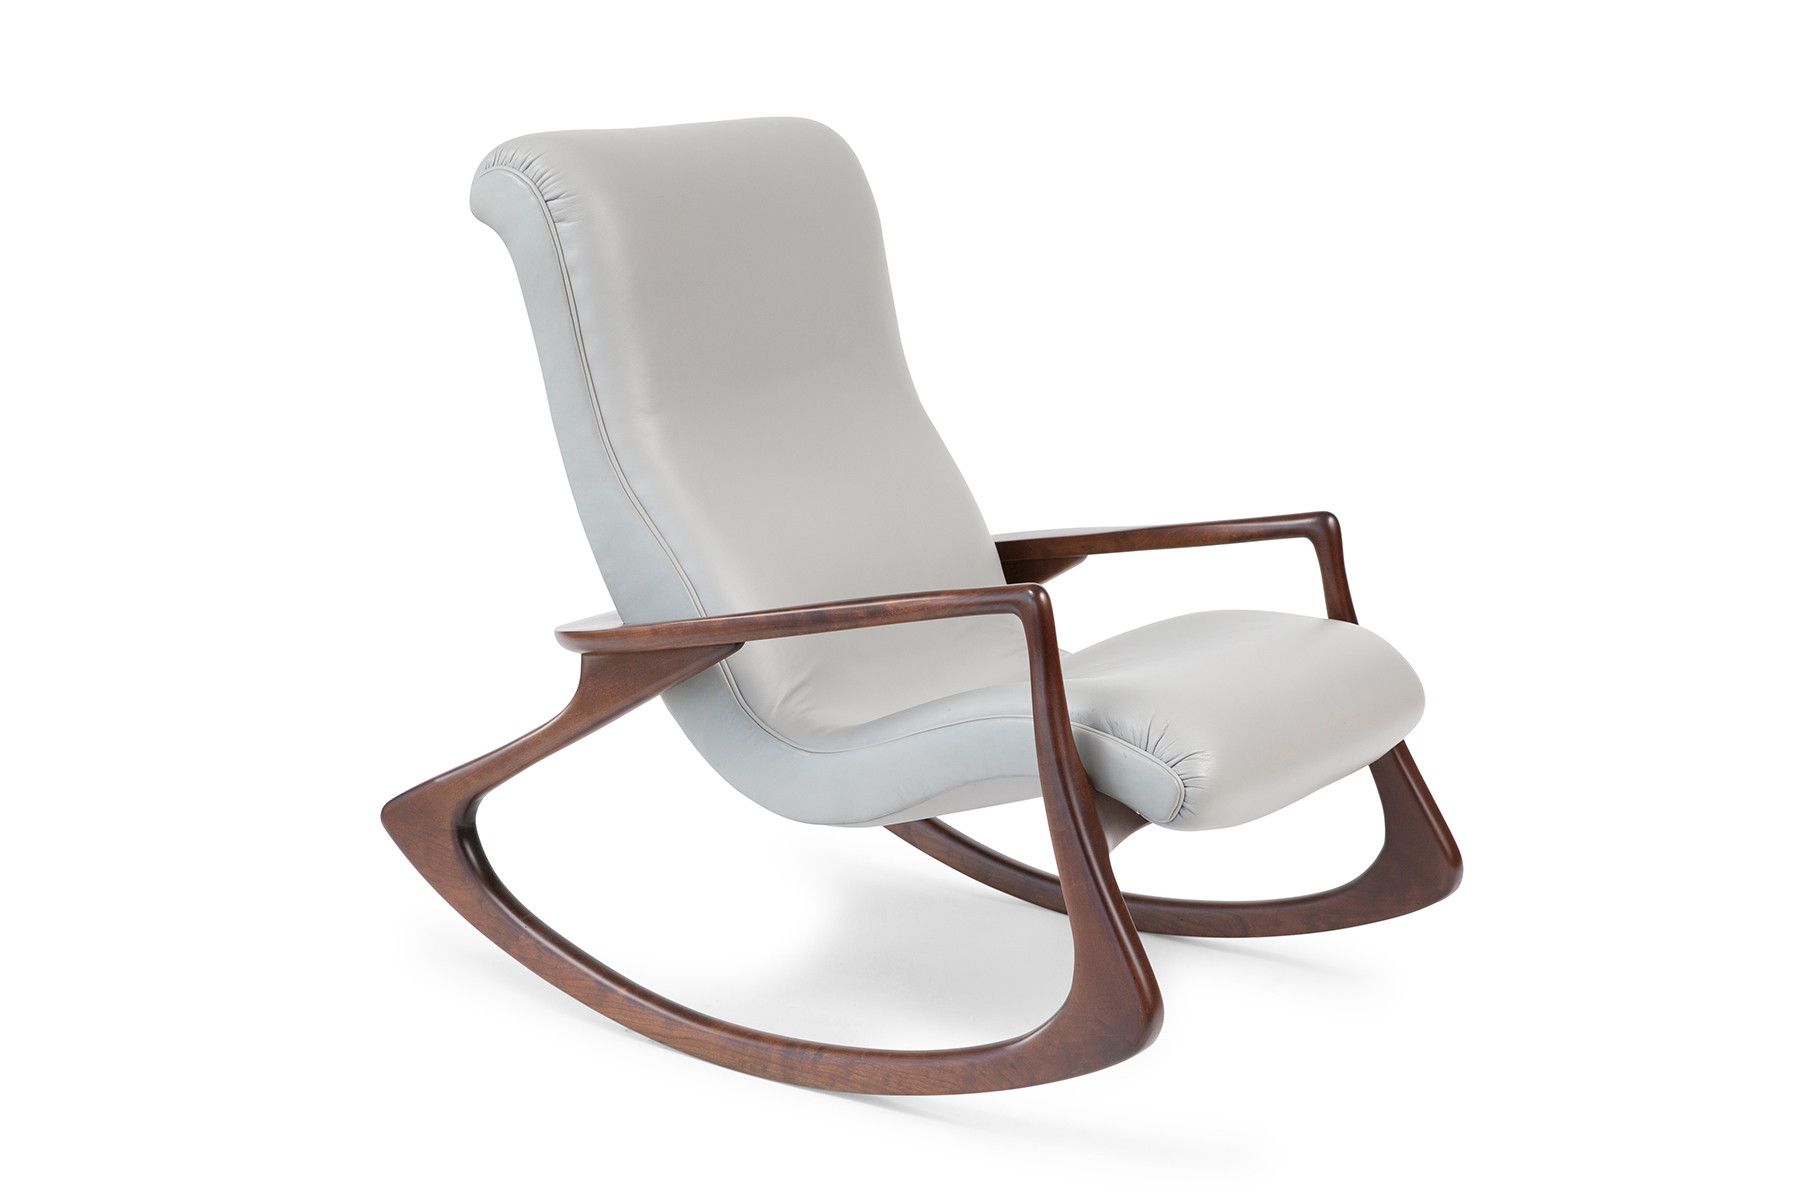 Rocking Chairs Stunning Vladimir Kagan Contour Rocking Chair